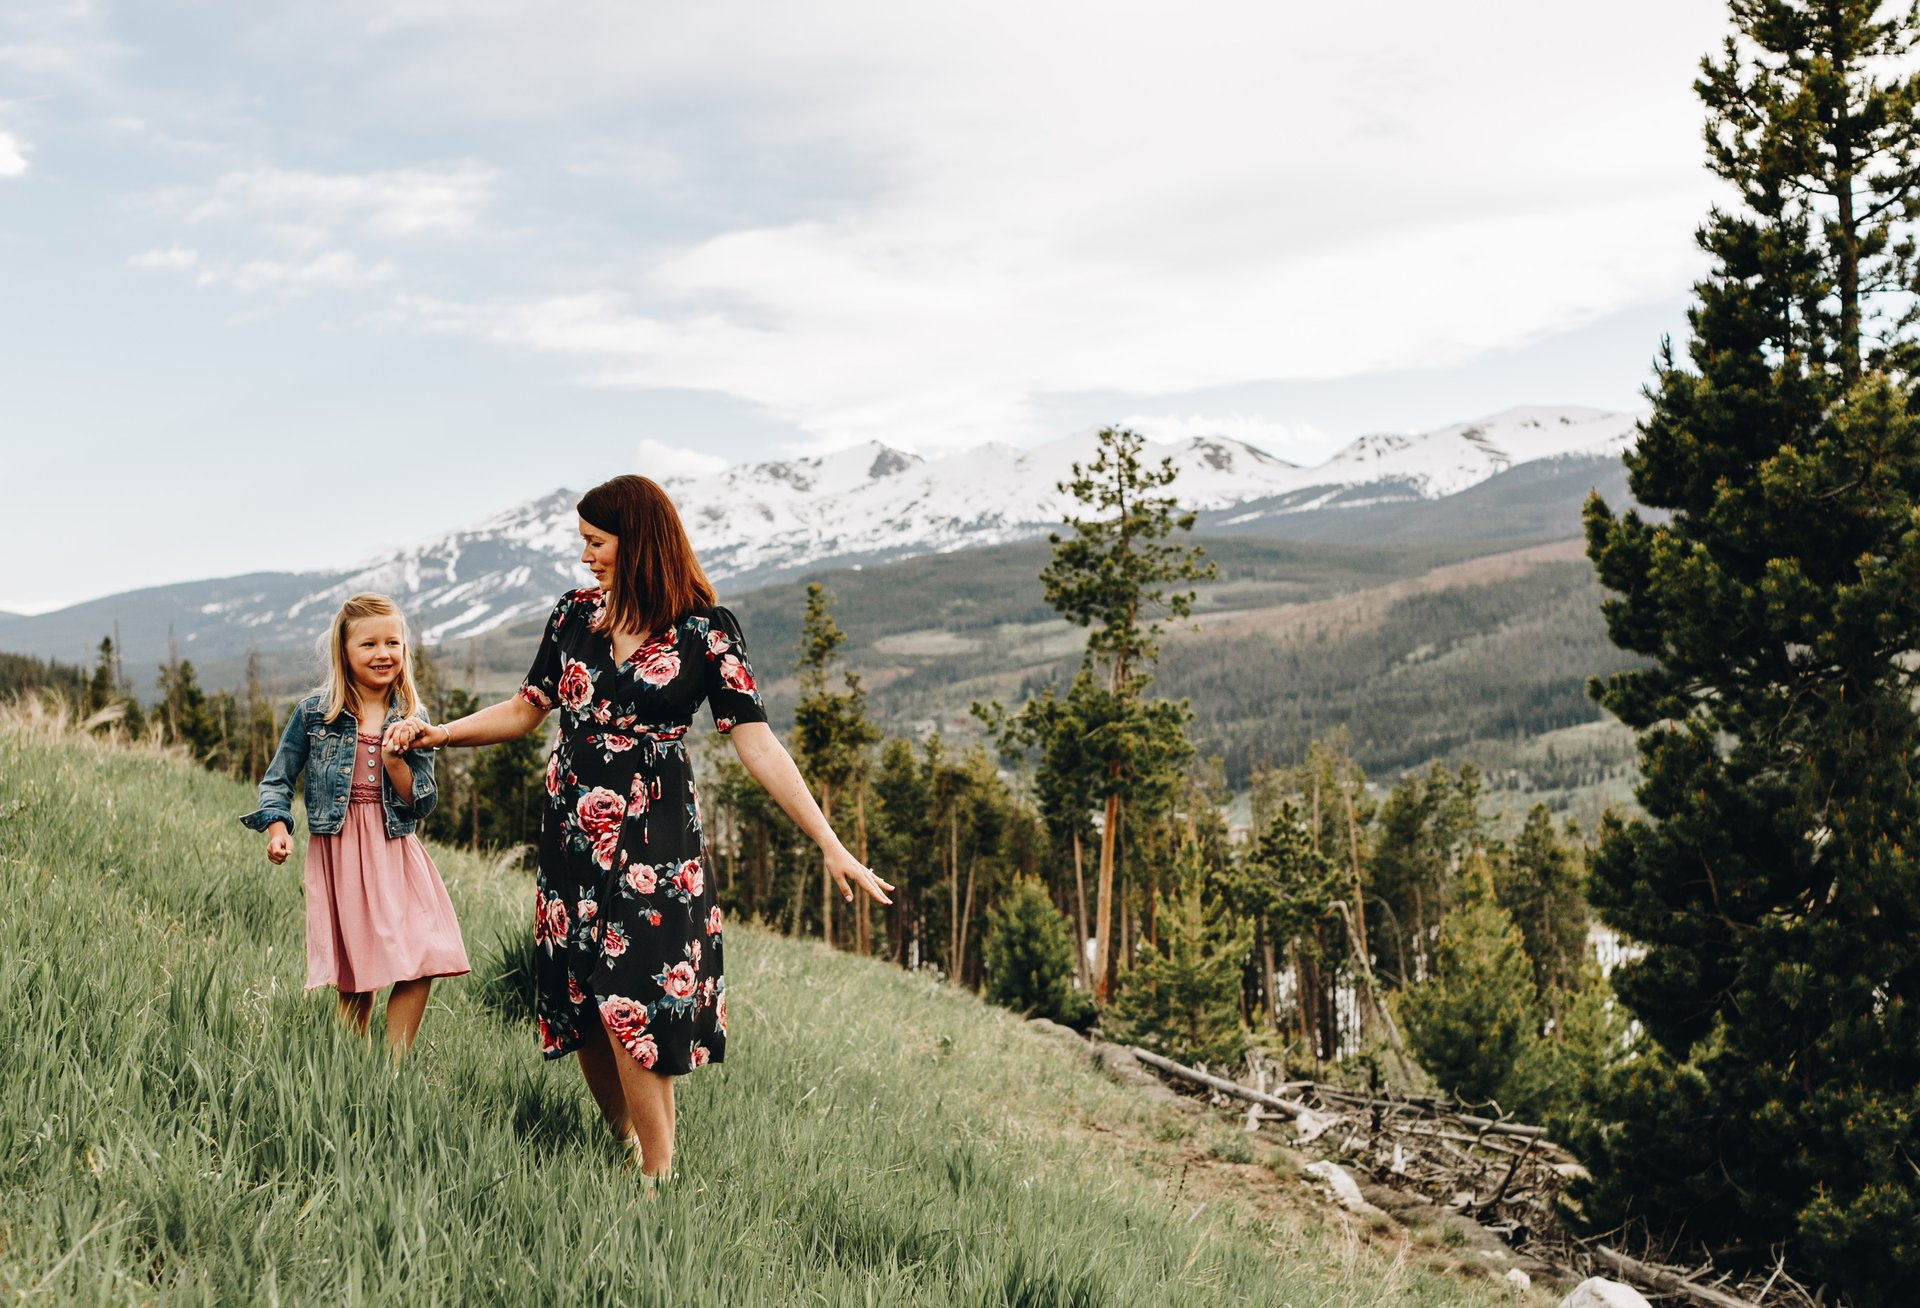 Breckenridge-United States-travel-story-Flytographer-10